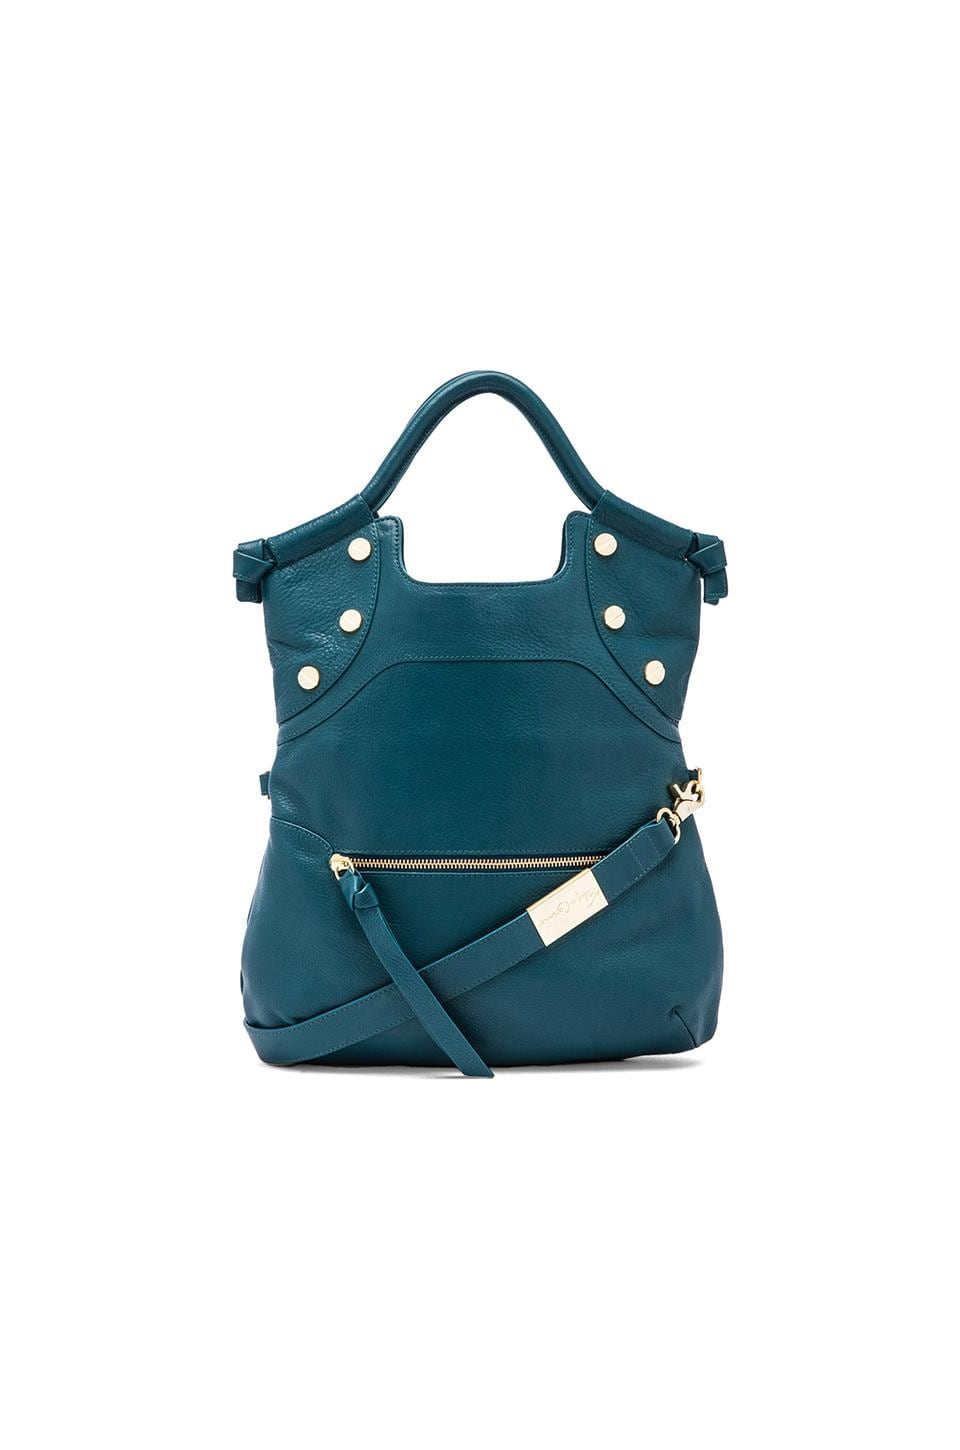 Foley + Corinna FC Lady Tote in Marine